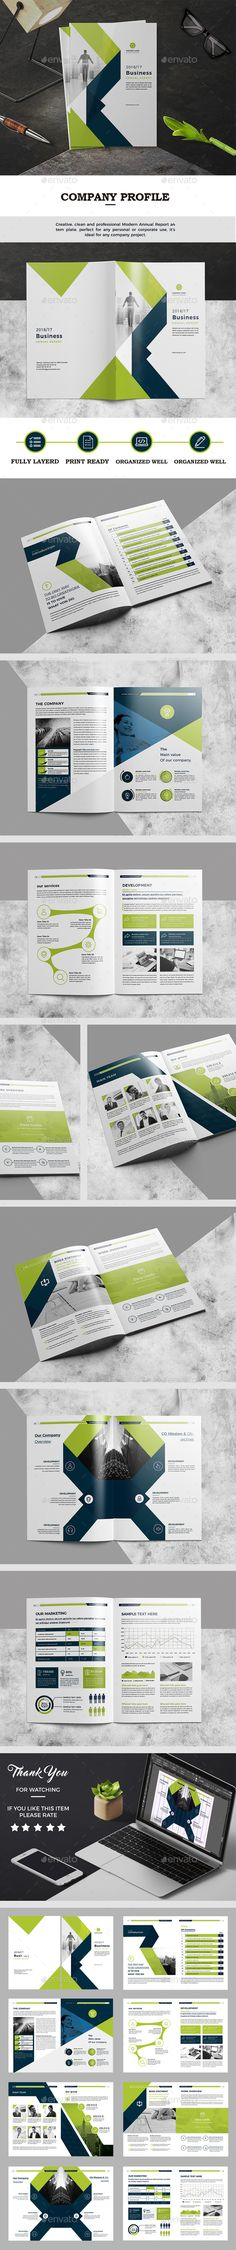 Business Plan — InDesign INDD #business #trendy • Download ➝ https://graphicriver.net/item/business-plan/19246055?ref=pxcr